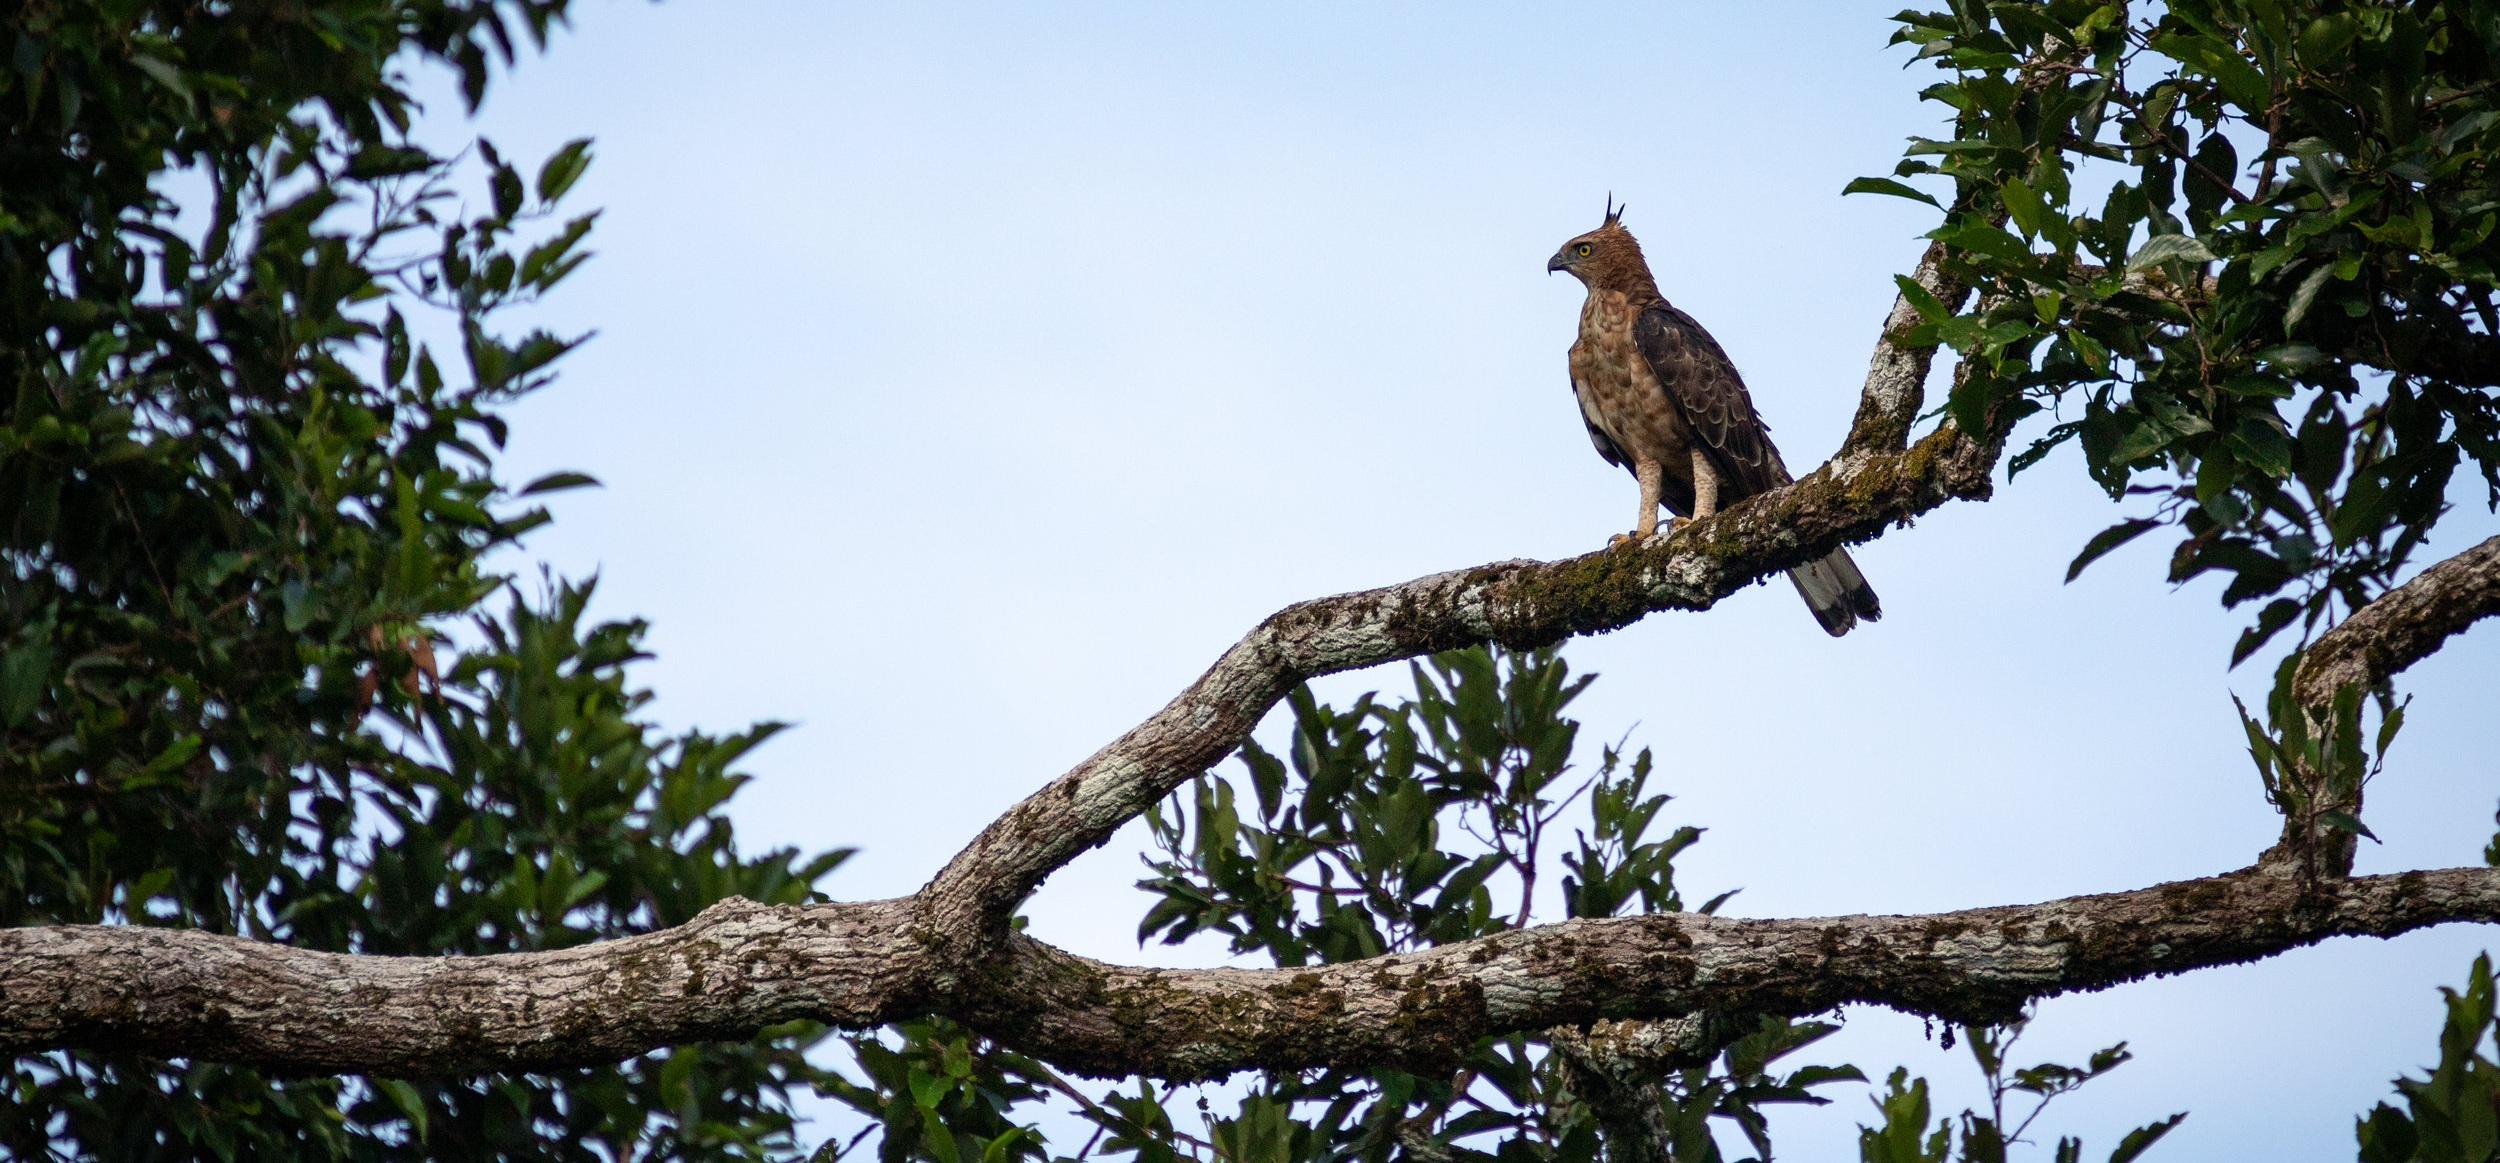 Wallace's hawk-eagle (Nisaetus nanus) perched on a tree branch in Borneo, Sepilok, Malaysia.